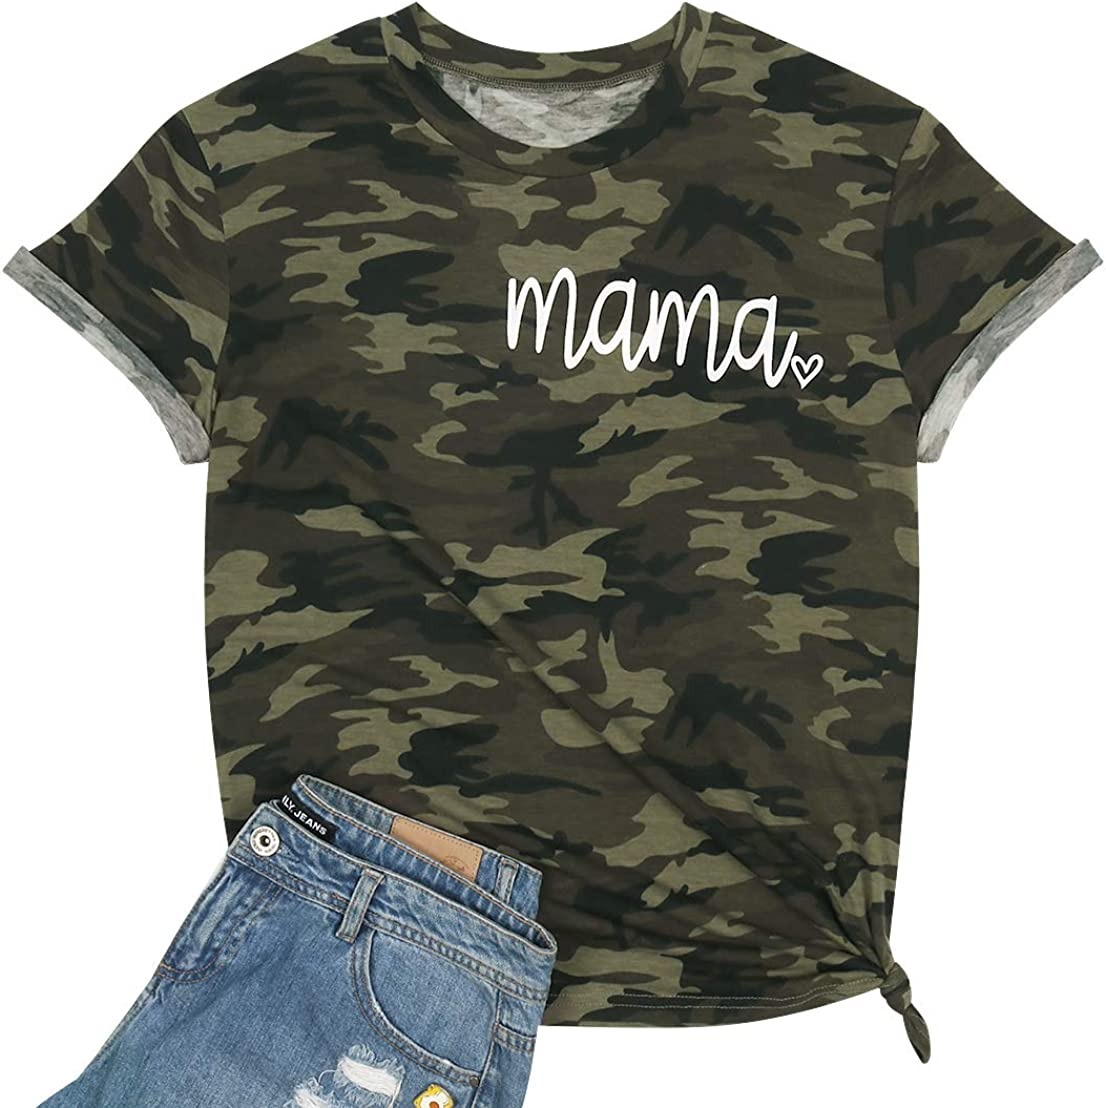 Camouflage Shirts for Women Mama Letter Printed T-Shirt Heart Graphic Casual Short Sleeve Tee Tops